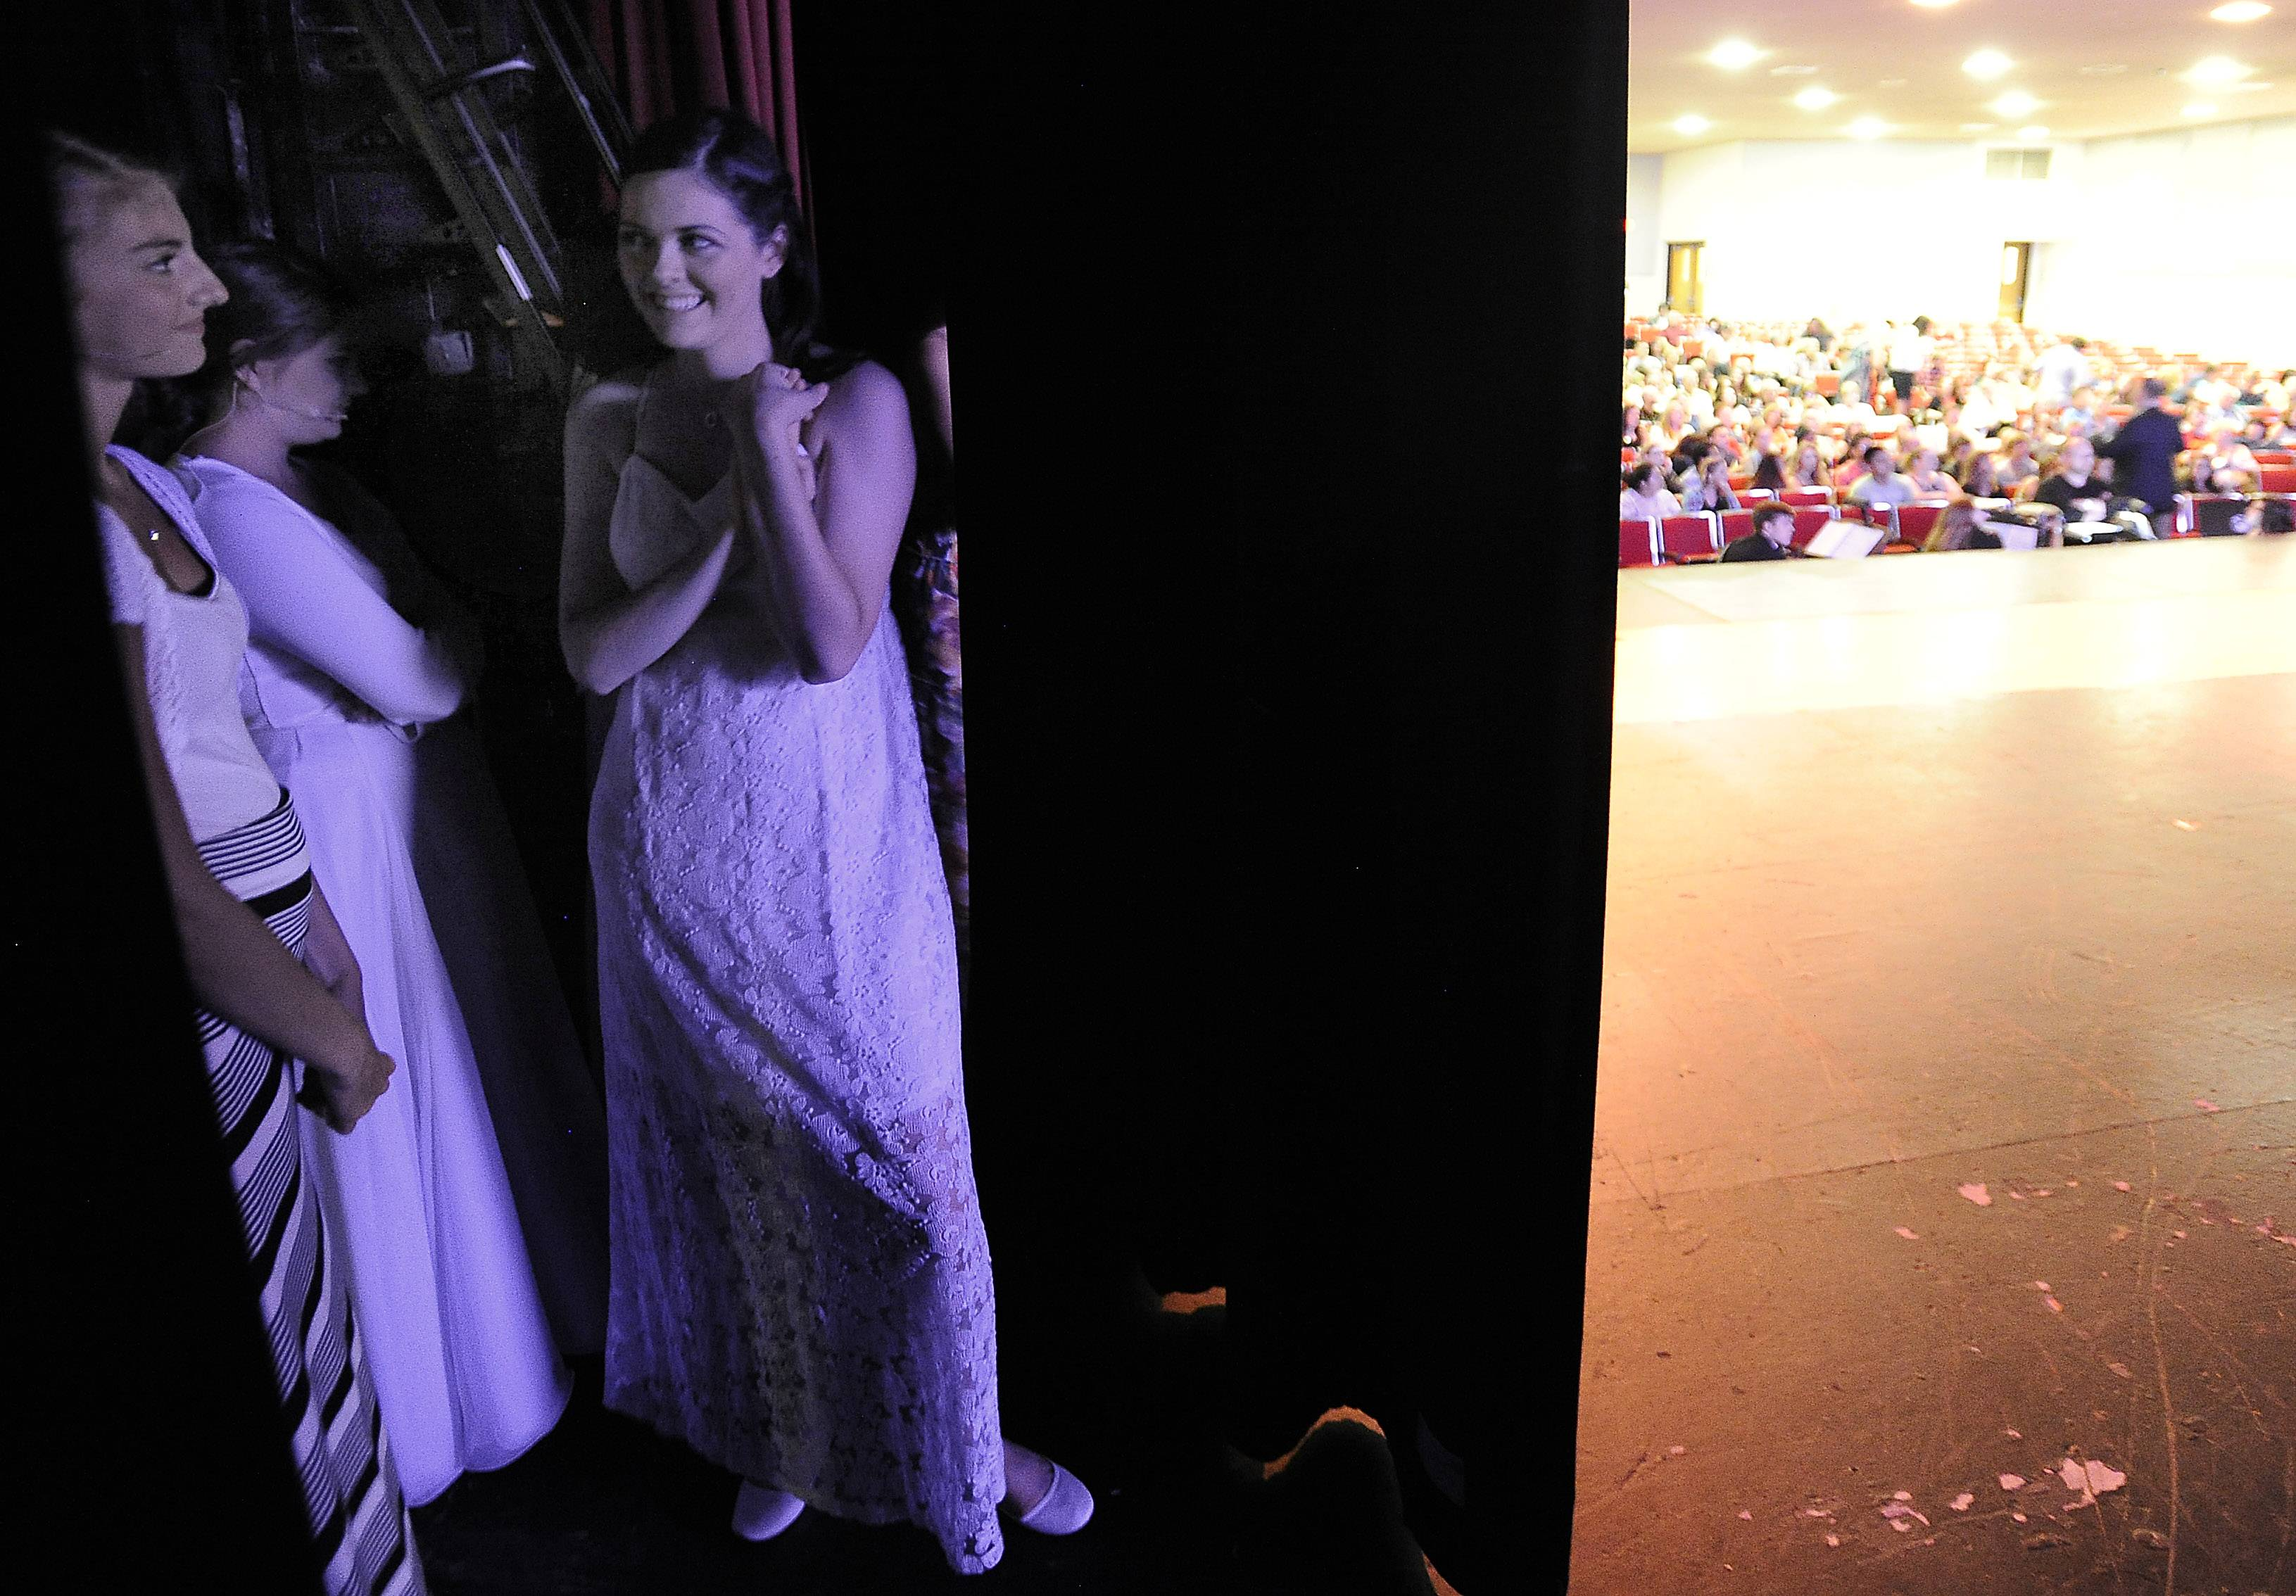 Monica Tipperreiter, playing Lily, stands backstage as she finally gets to take the stage in the musical The Secret Garden.  Monica missed her stage debut because of her brain tumor ordeal early in the school year.